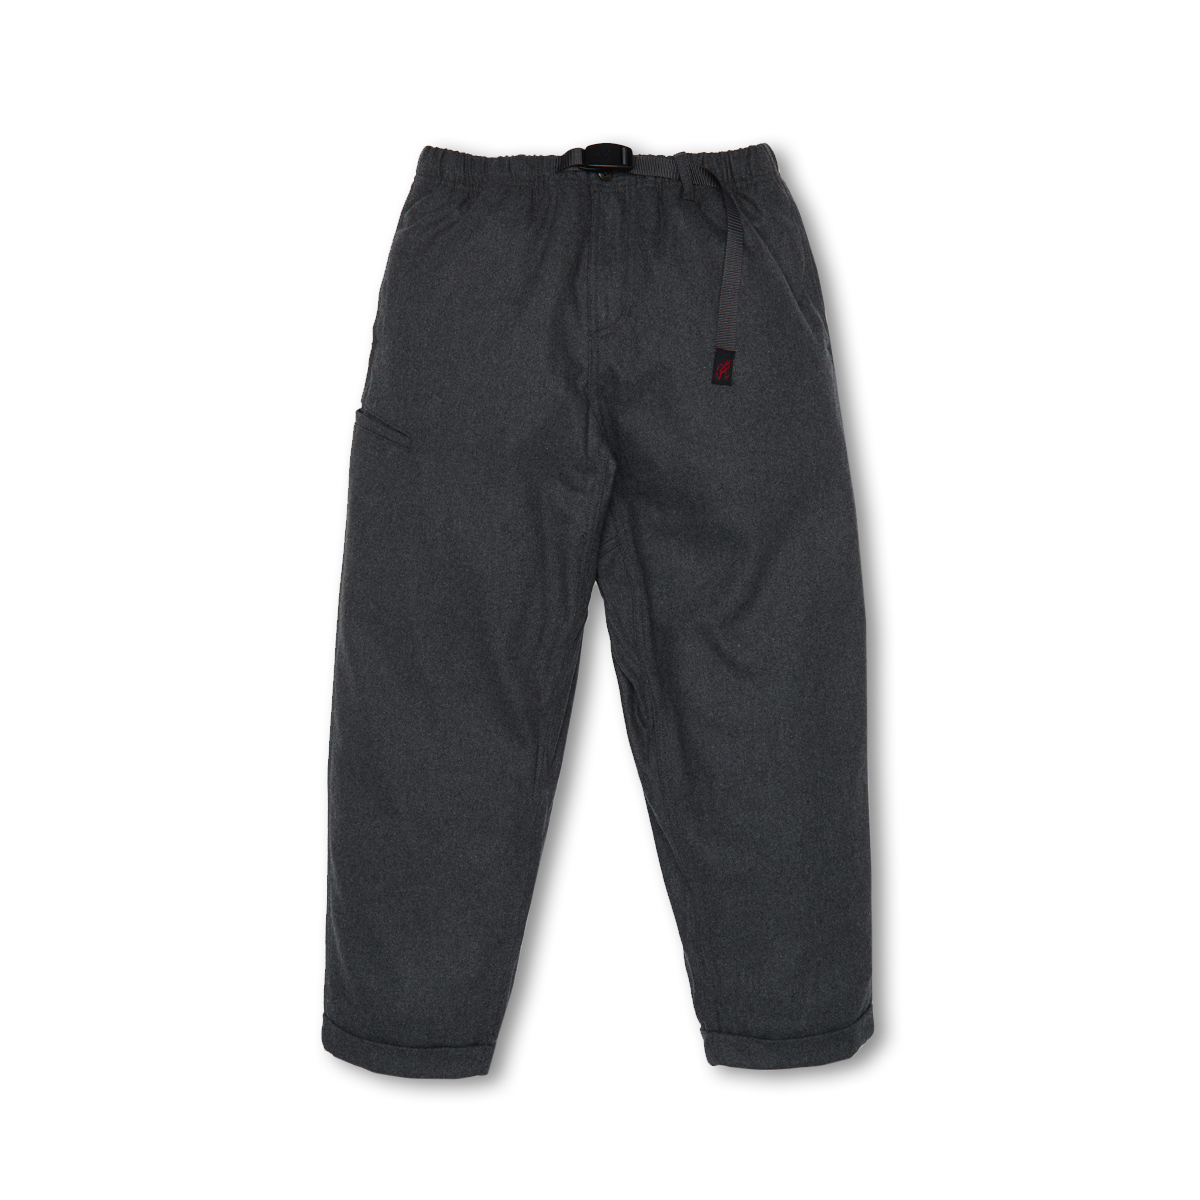 [GRAMICCI] WOOL BLEND RESORT PANTS 'HEATHER CHARCOAL'